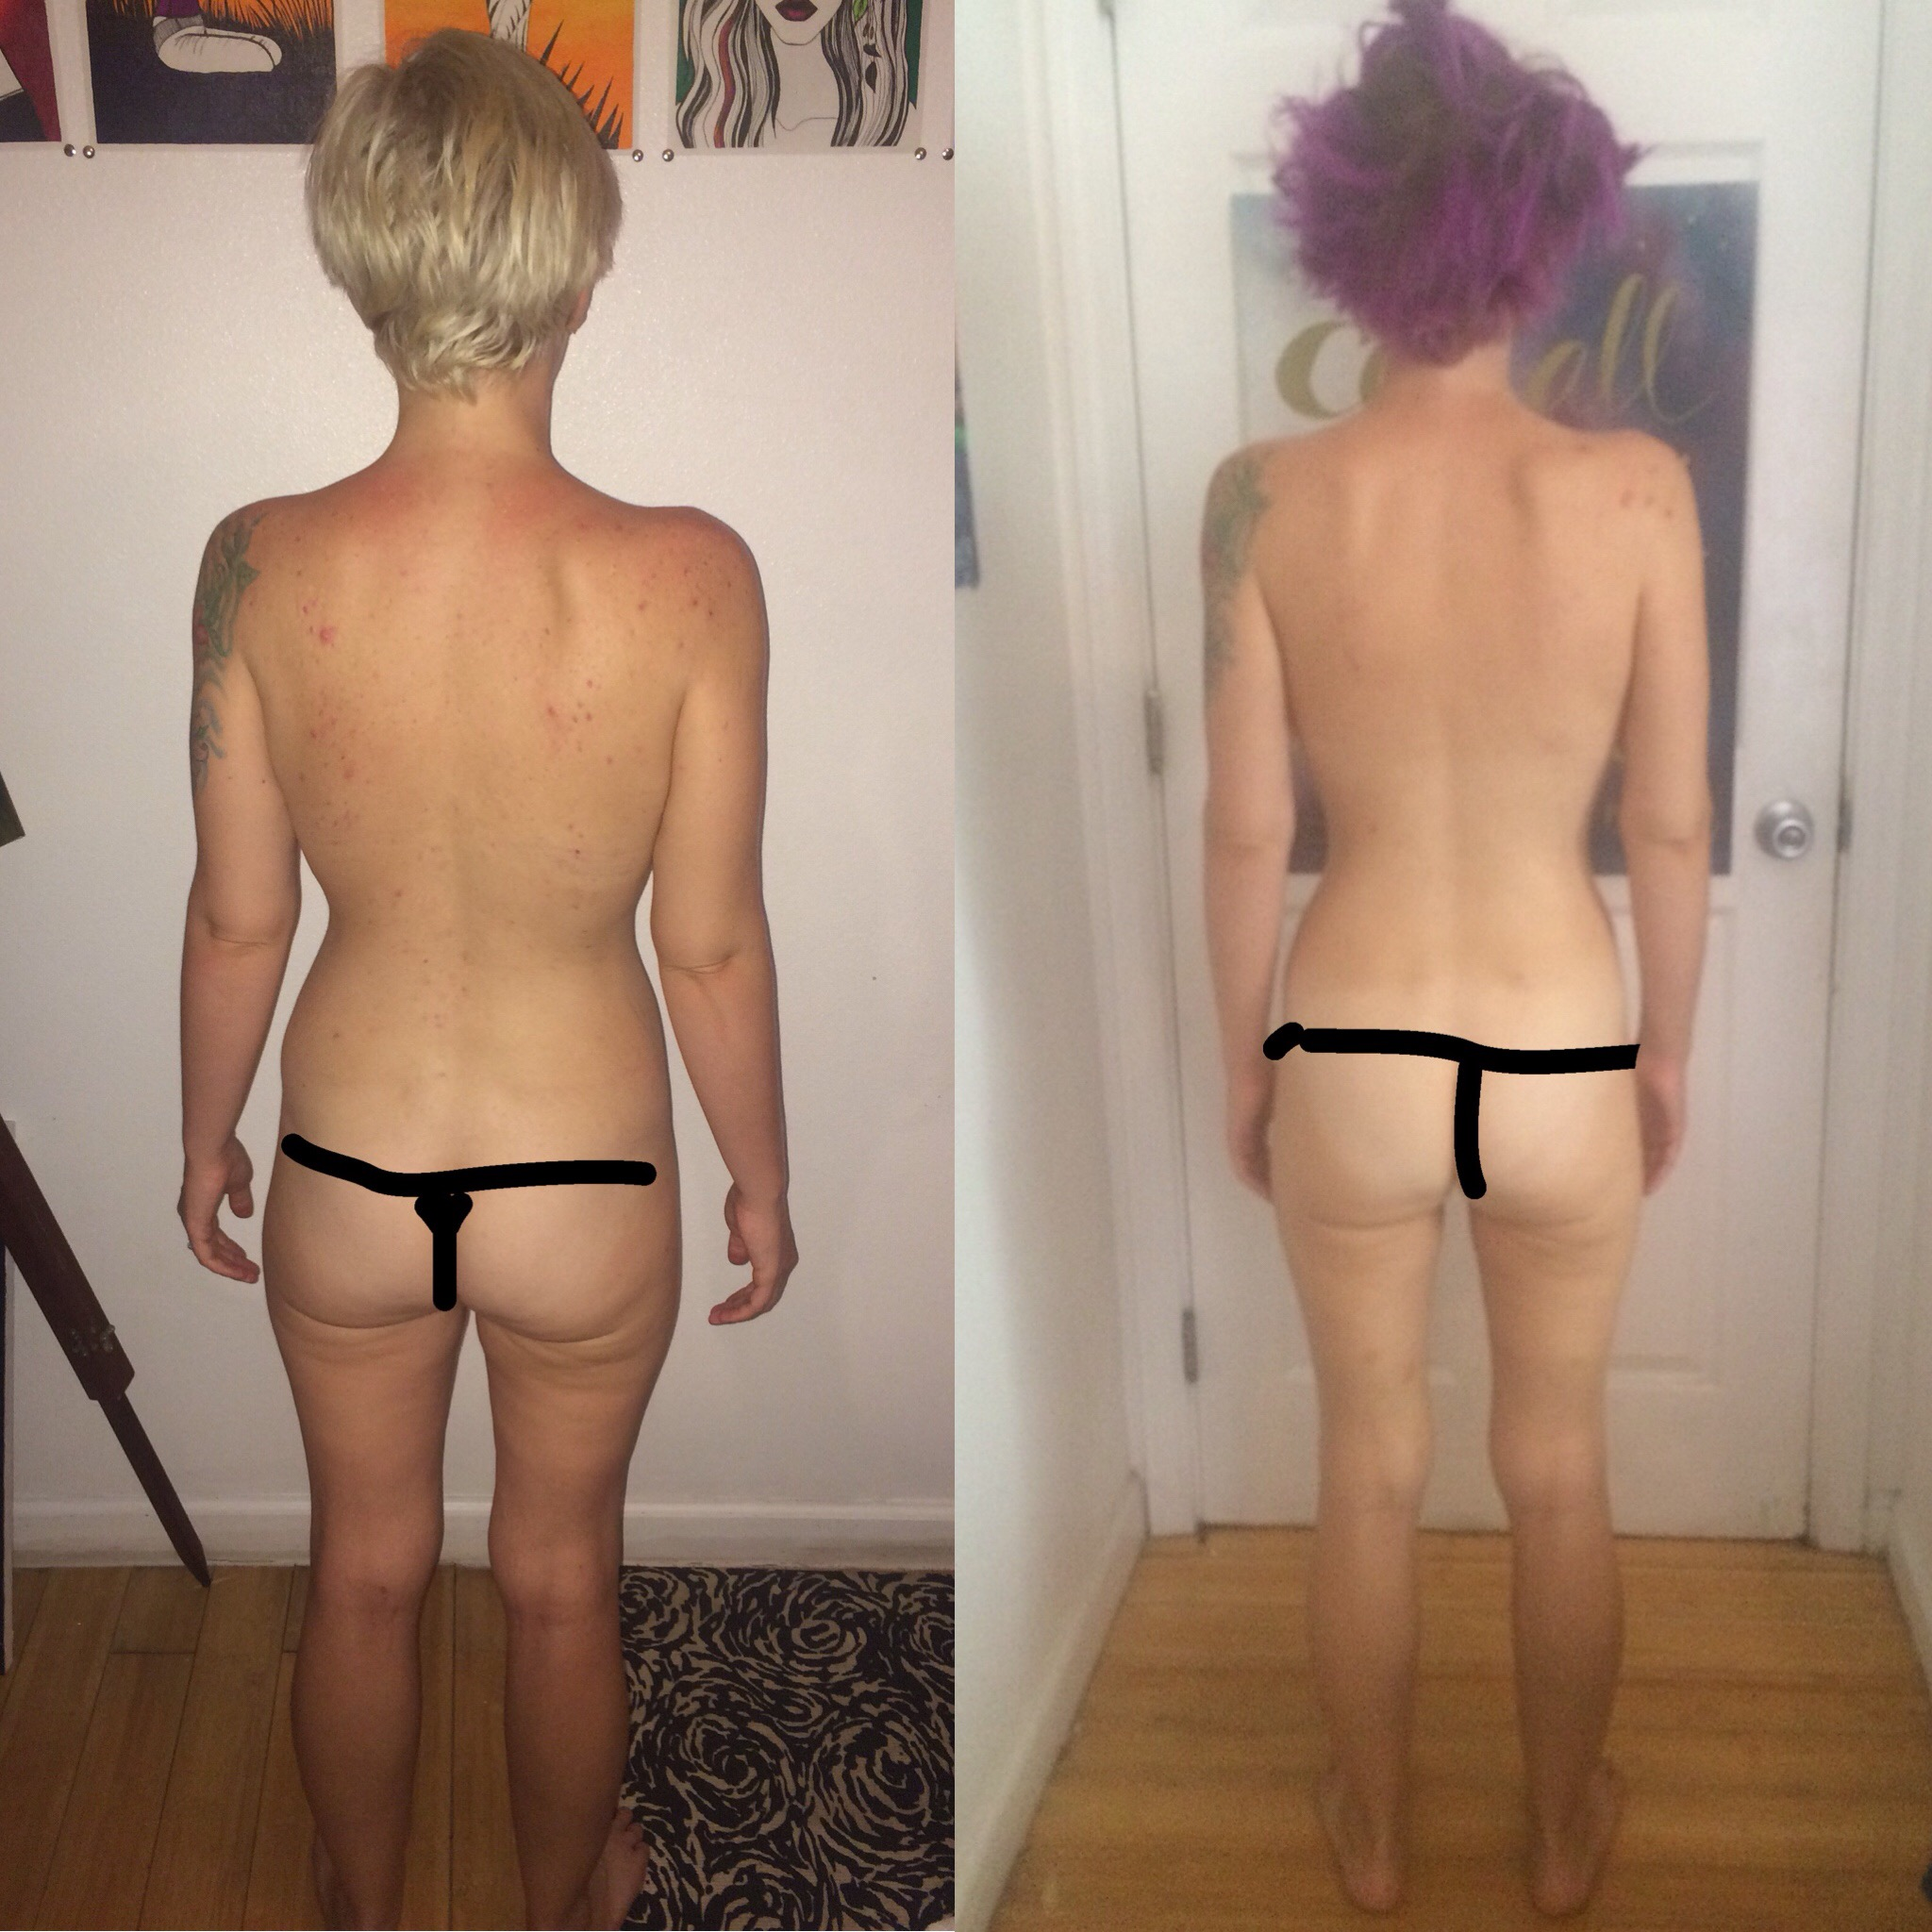 3 month difference! Notice the difference in my hips and back - it's huge in just a short amount of time. There's been new progress since, I'll update when I have new photos!